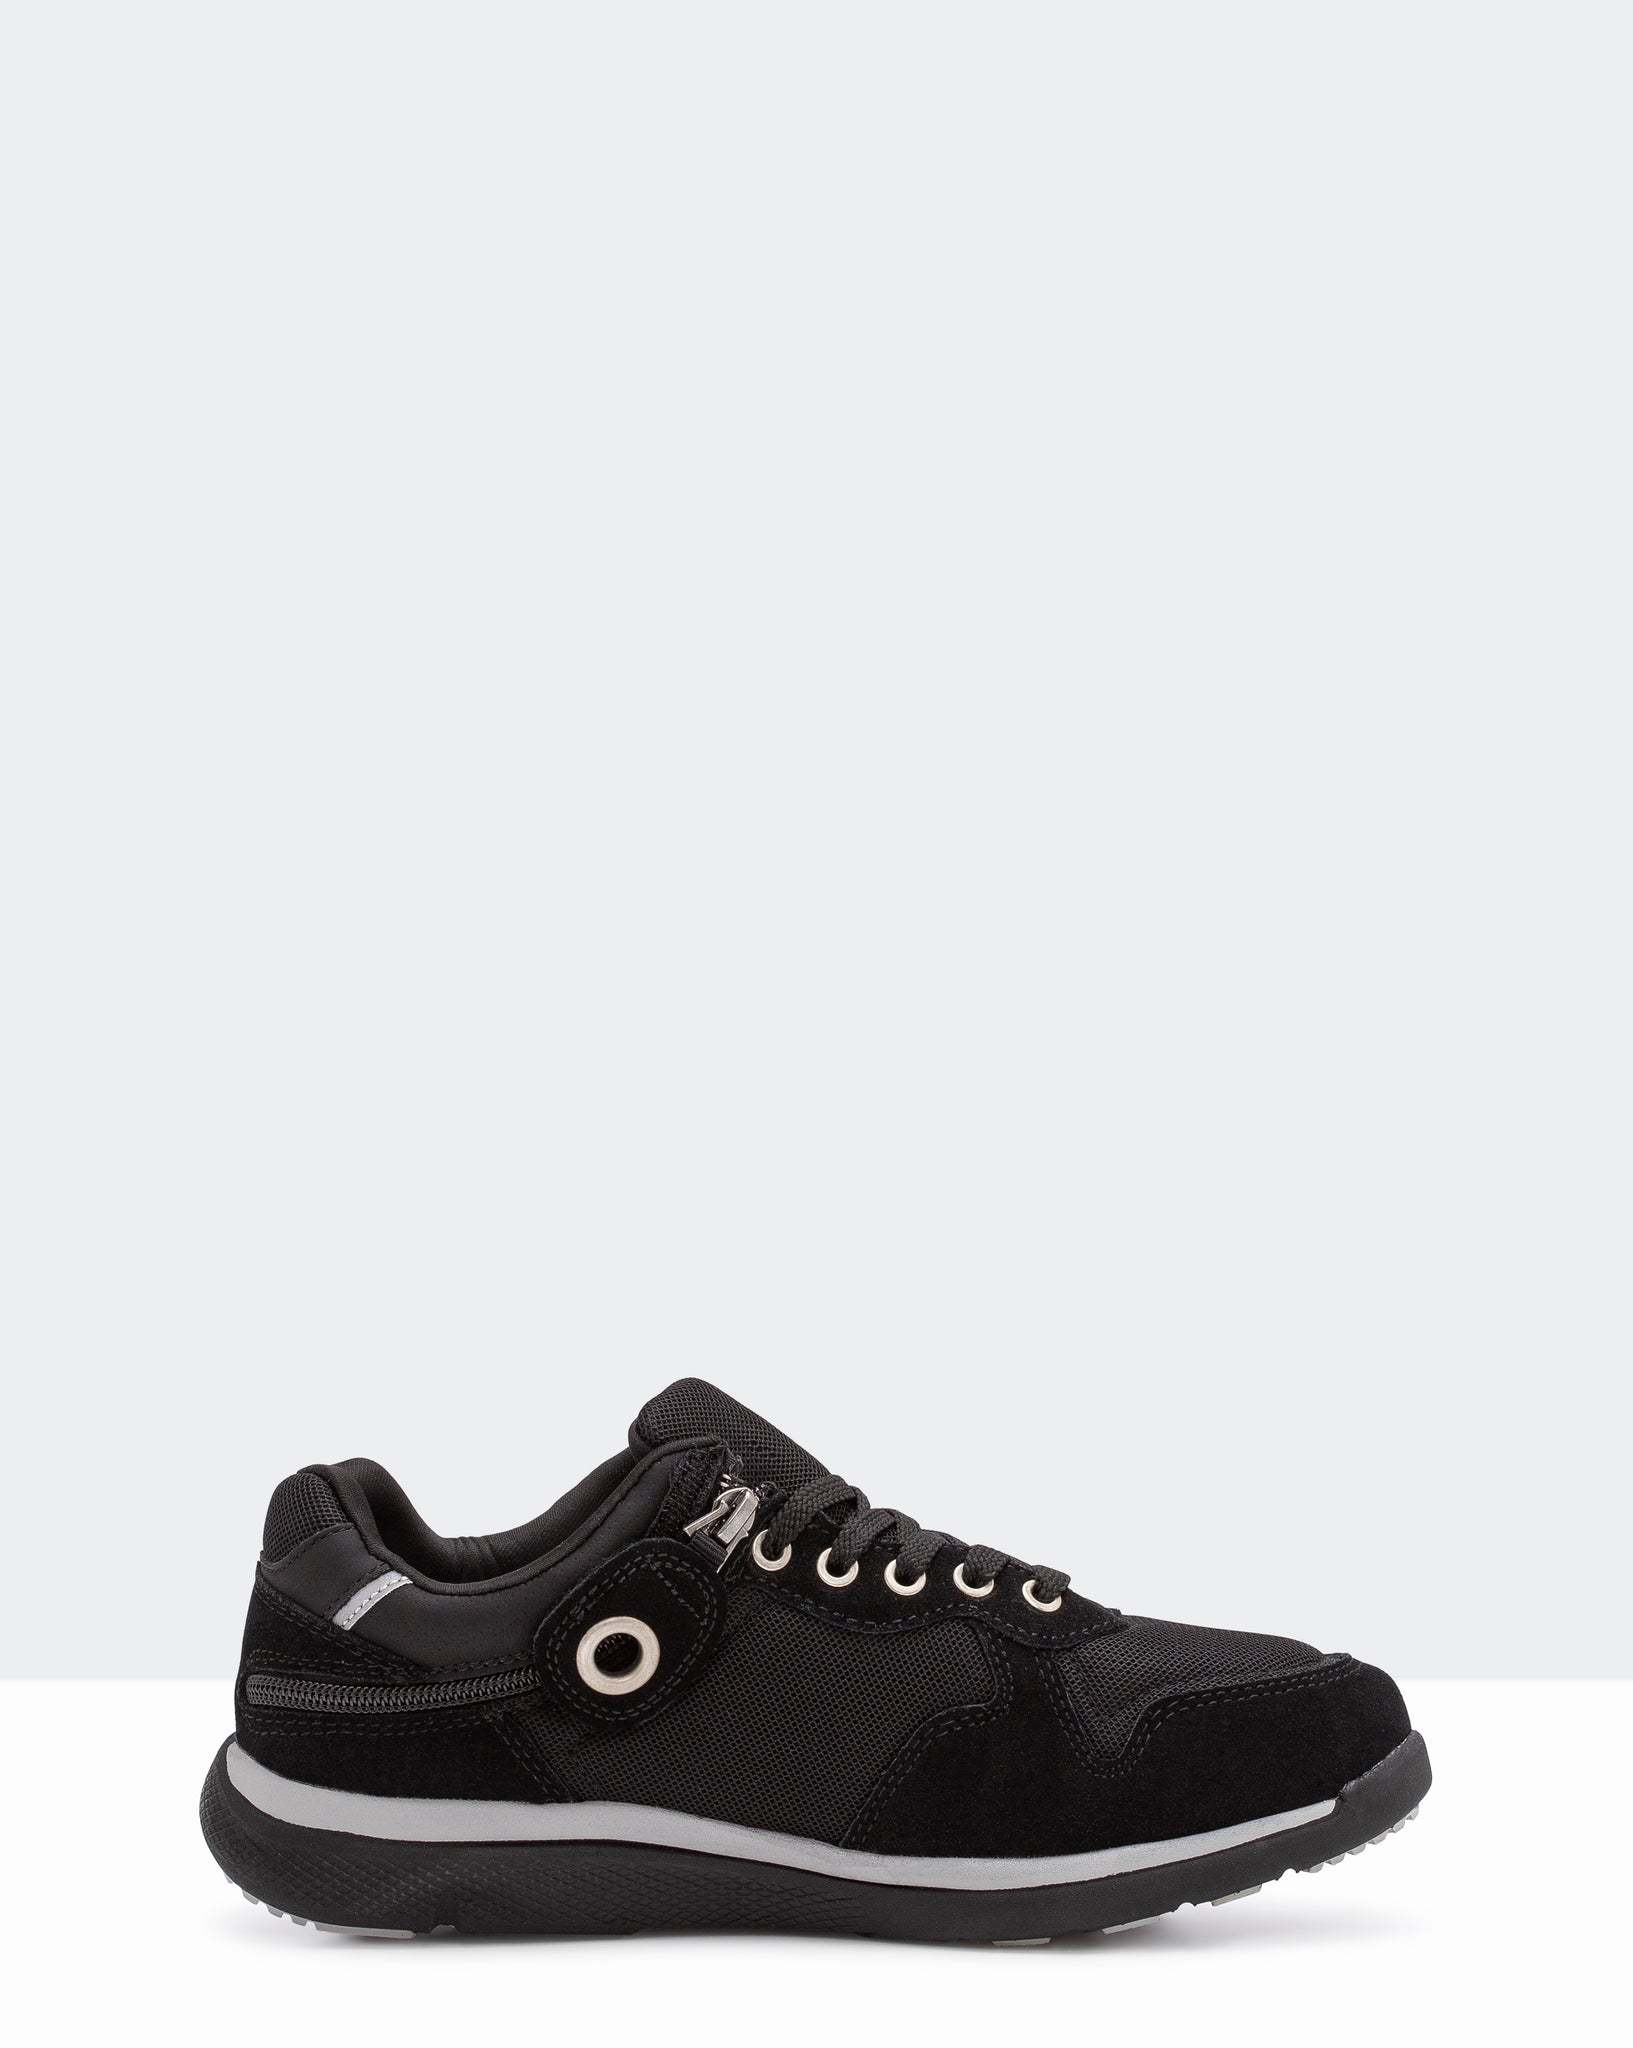 Excursion Low (Women) - Black